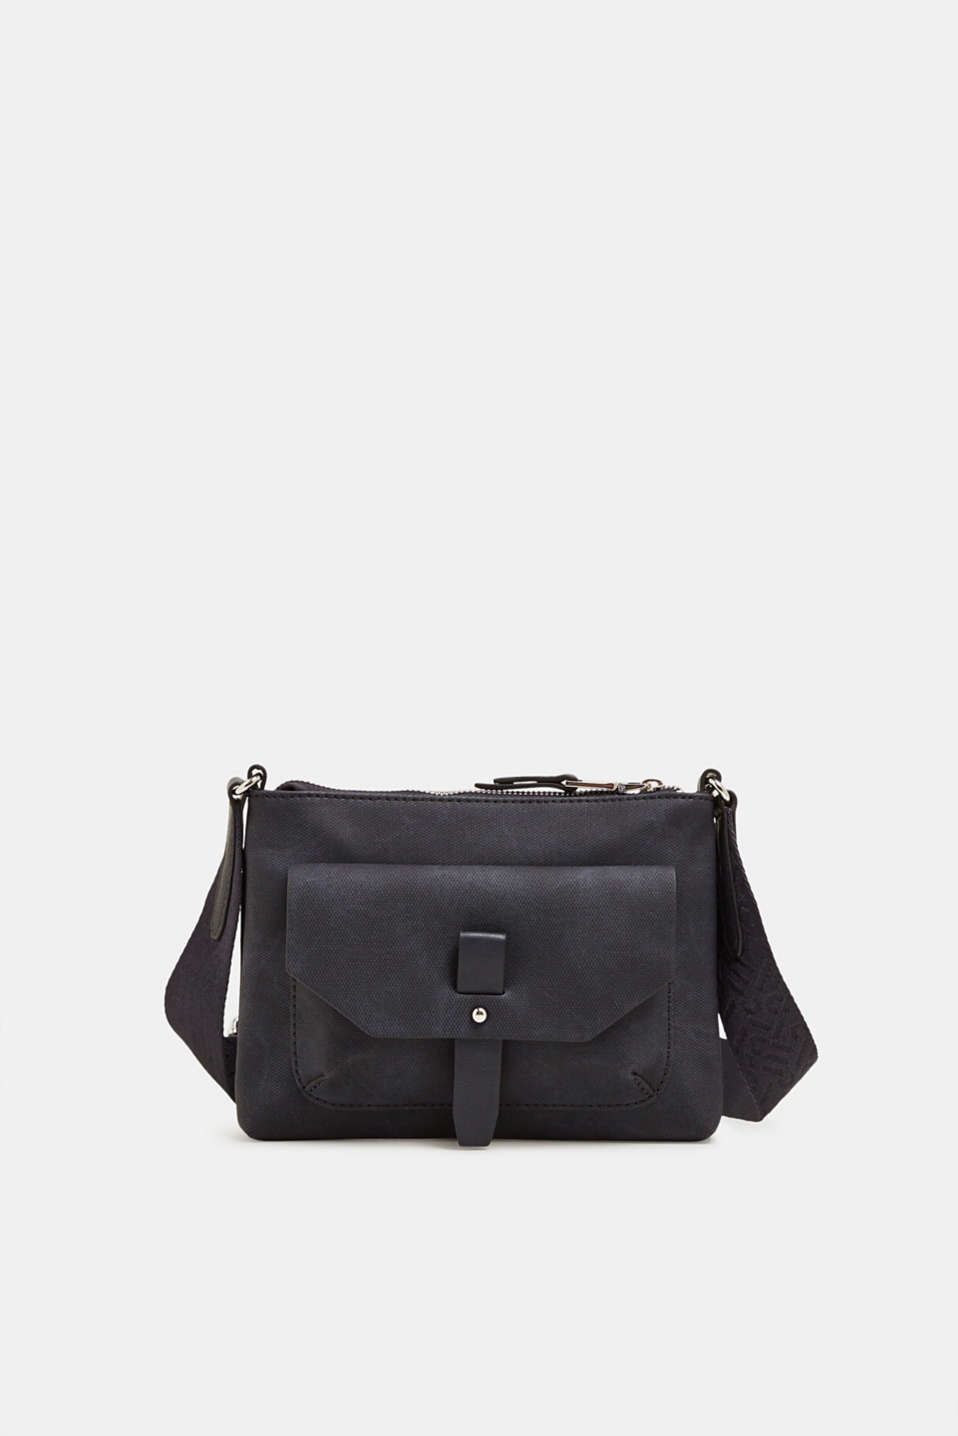 Esprit - Small faux leather bag with a logo strap